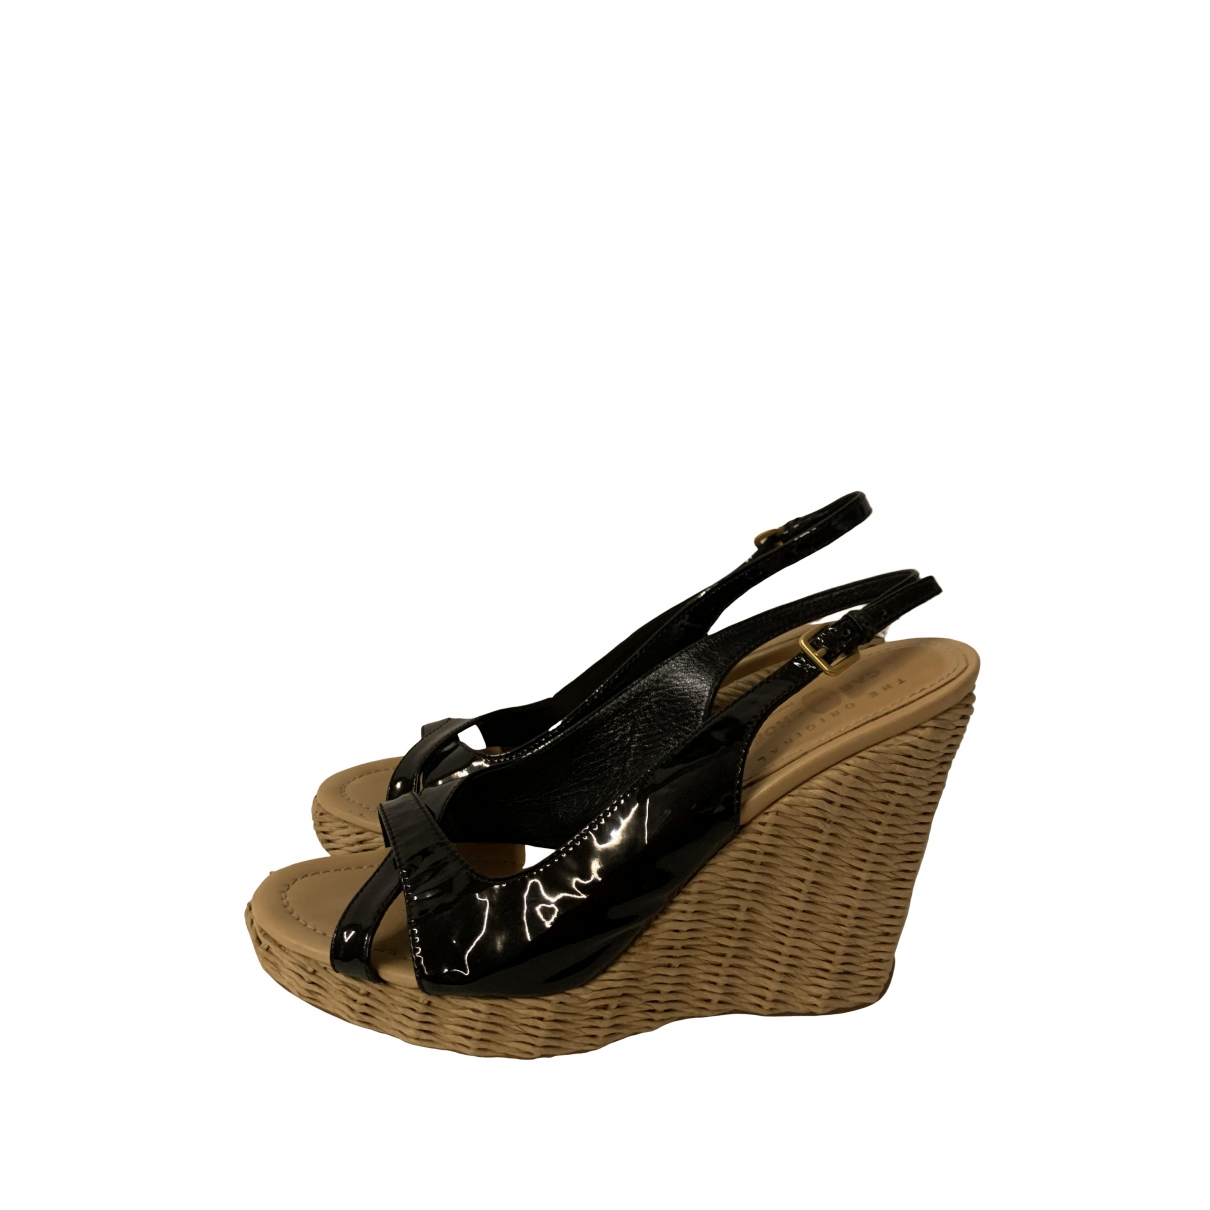 Carshoe \N Black Patent leather Sandals for Women 39.5 EU